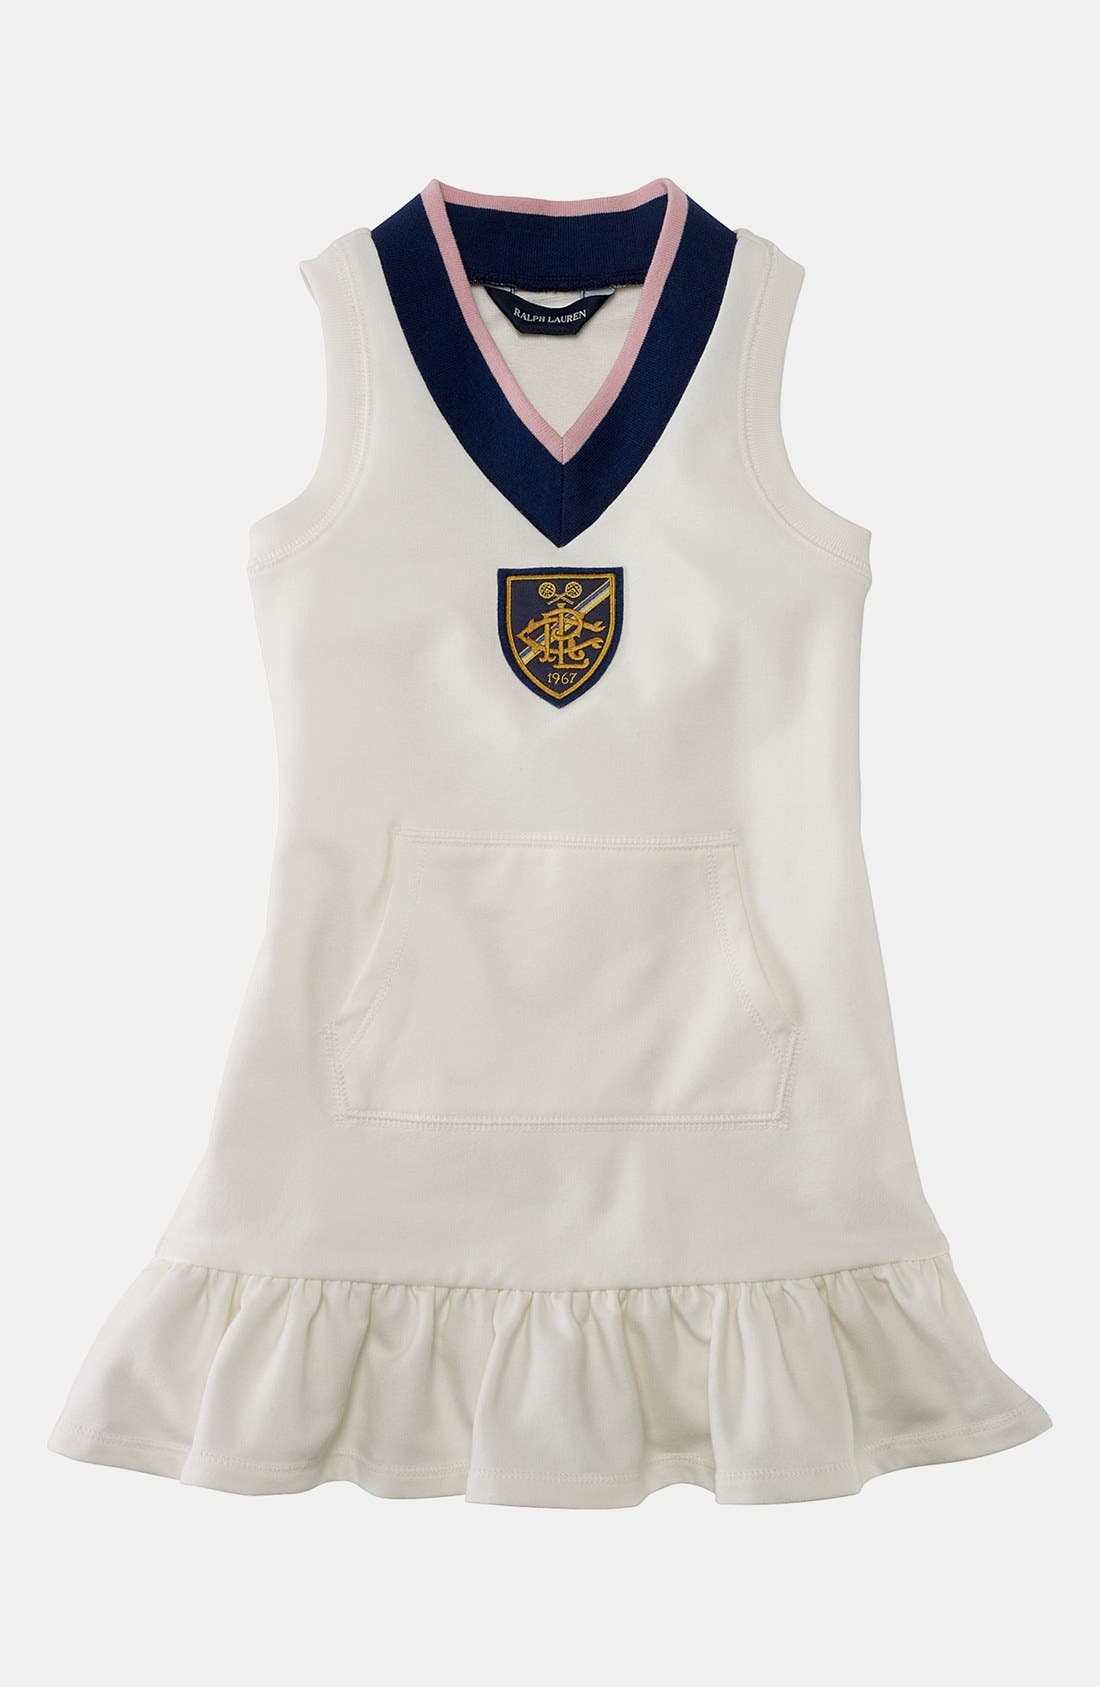 Alternate Image 1 Selected - Ralph Lauren Dress (Toddler)